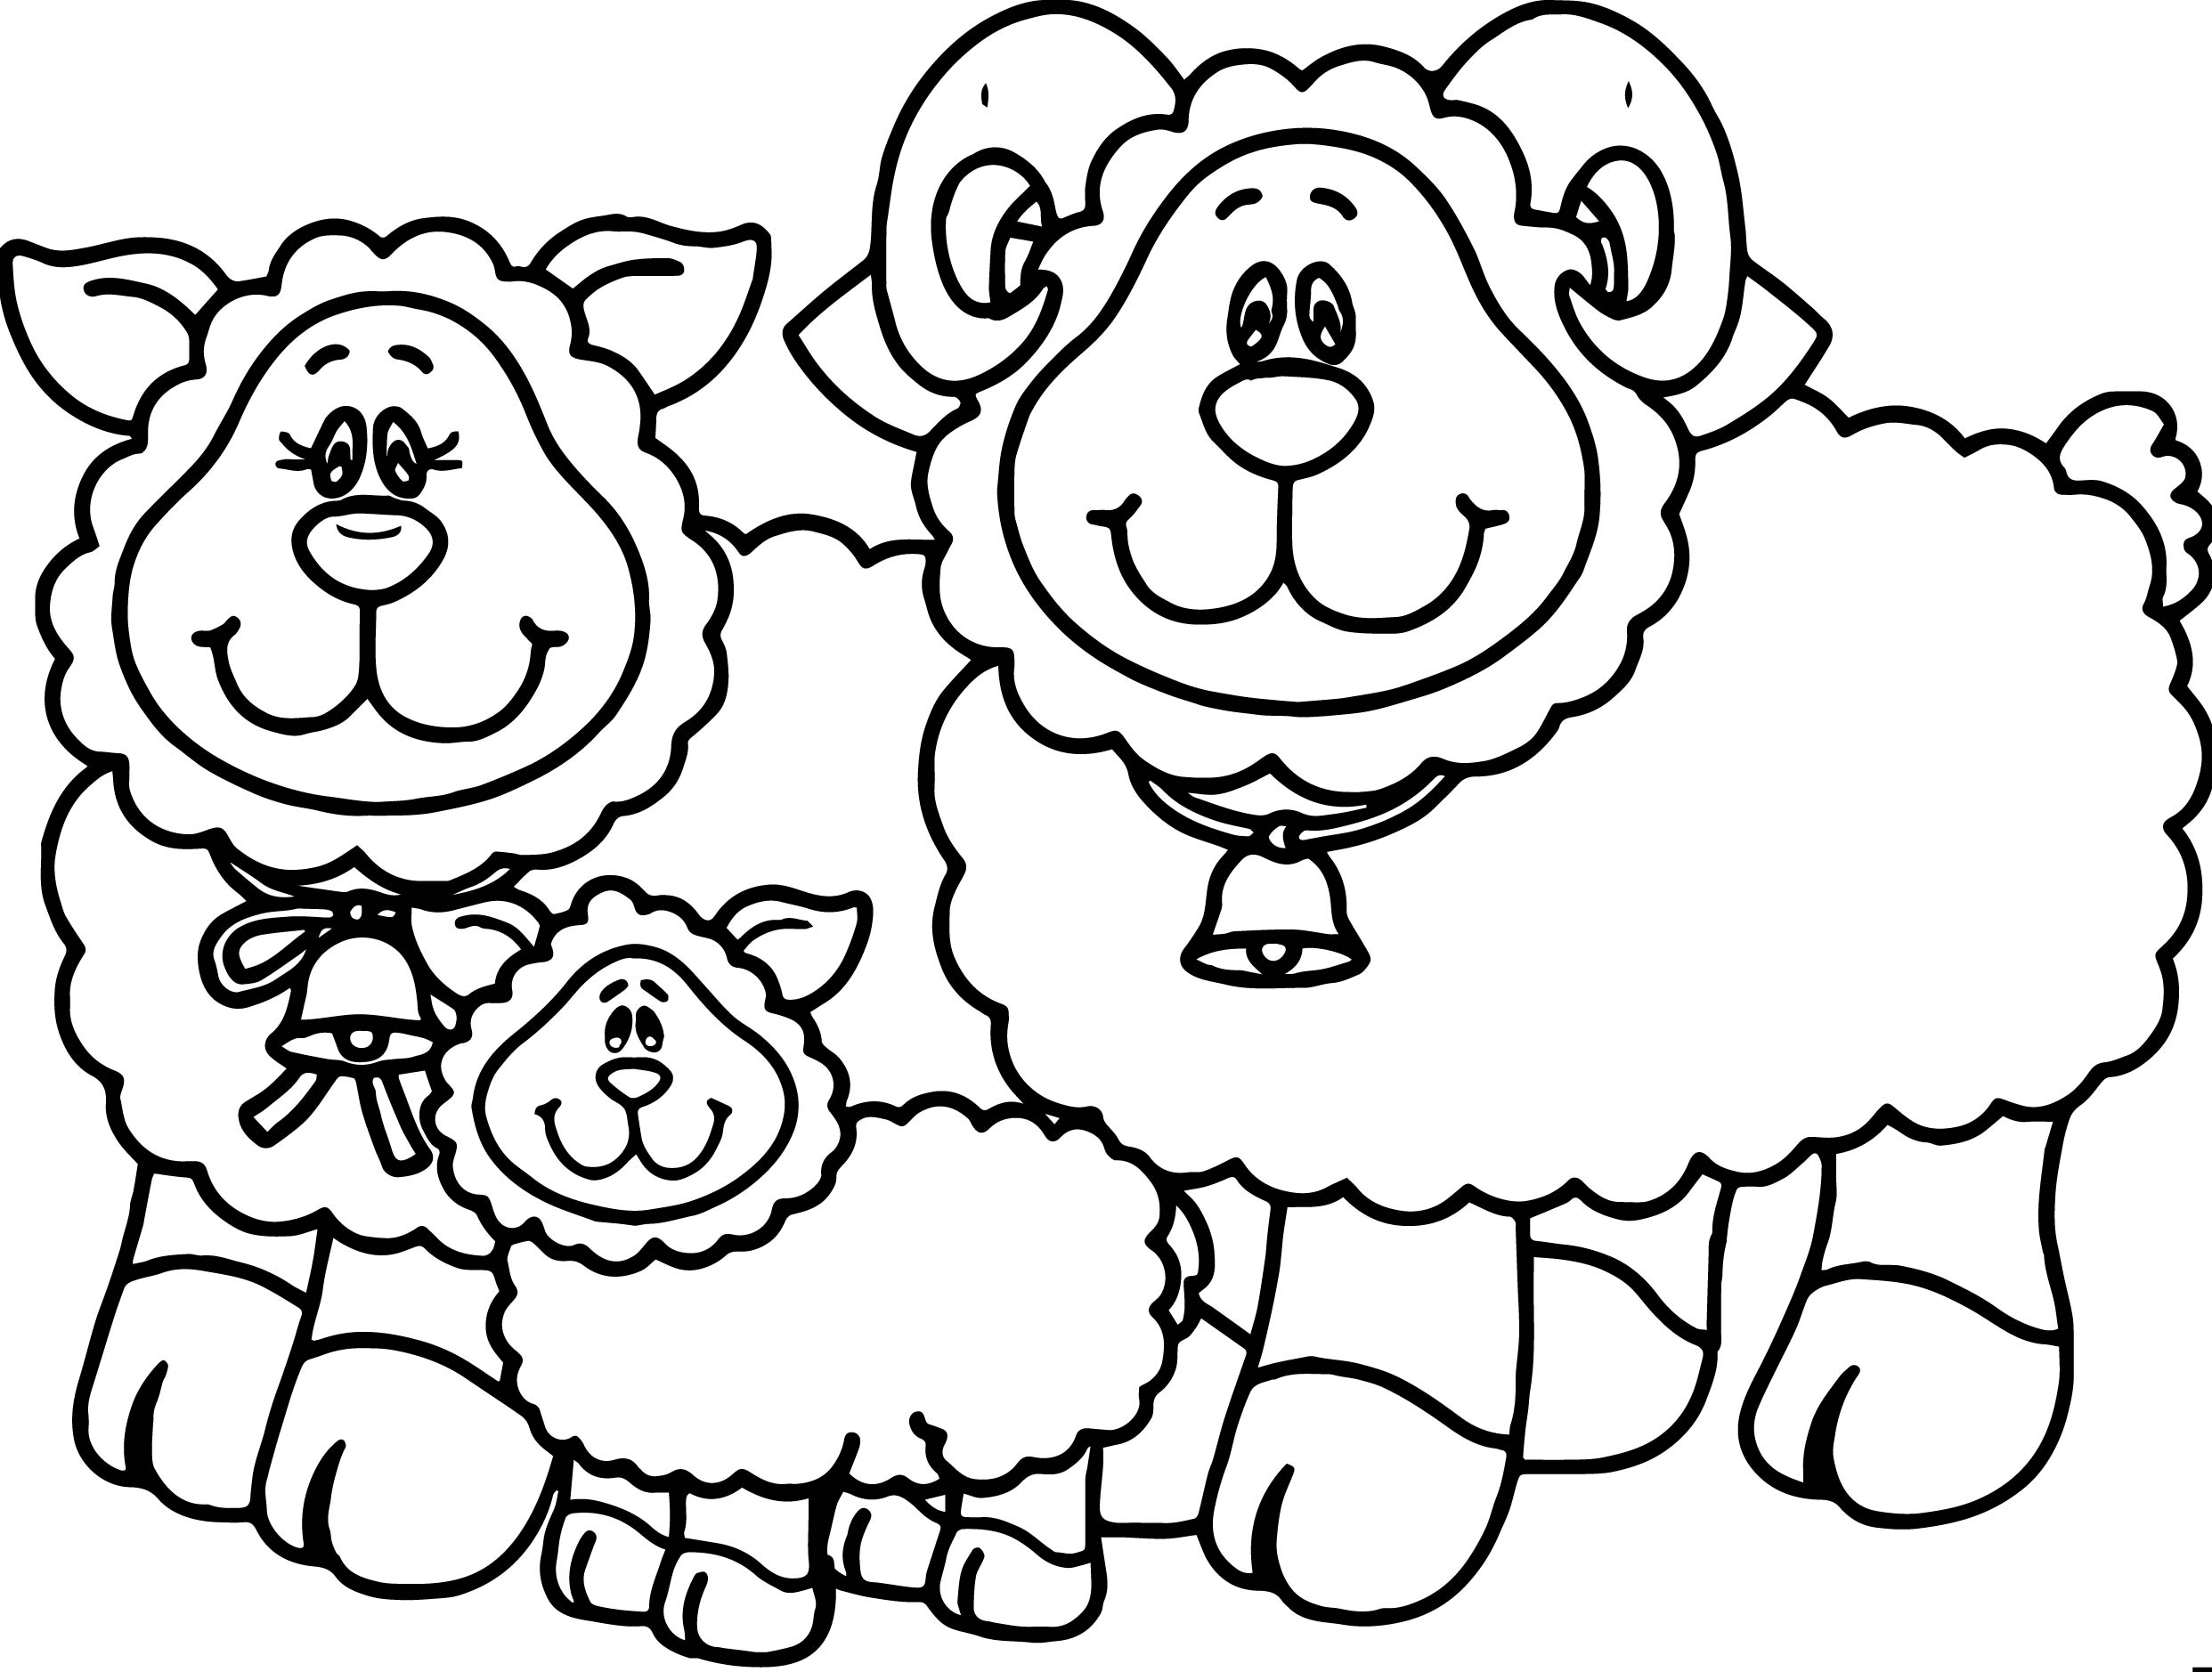 carson dellosa family sheep coloring page - Sheep Coloring Page